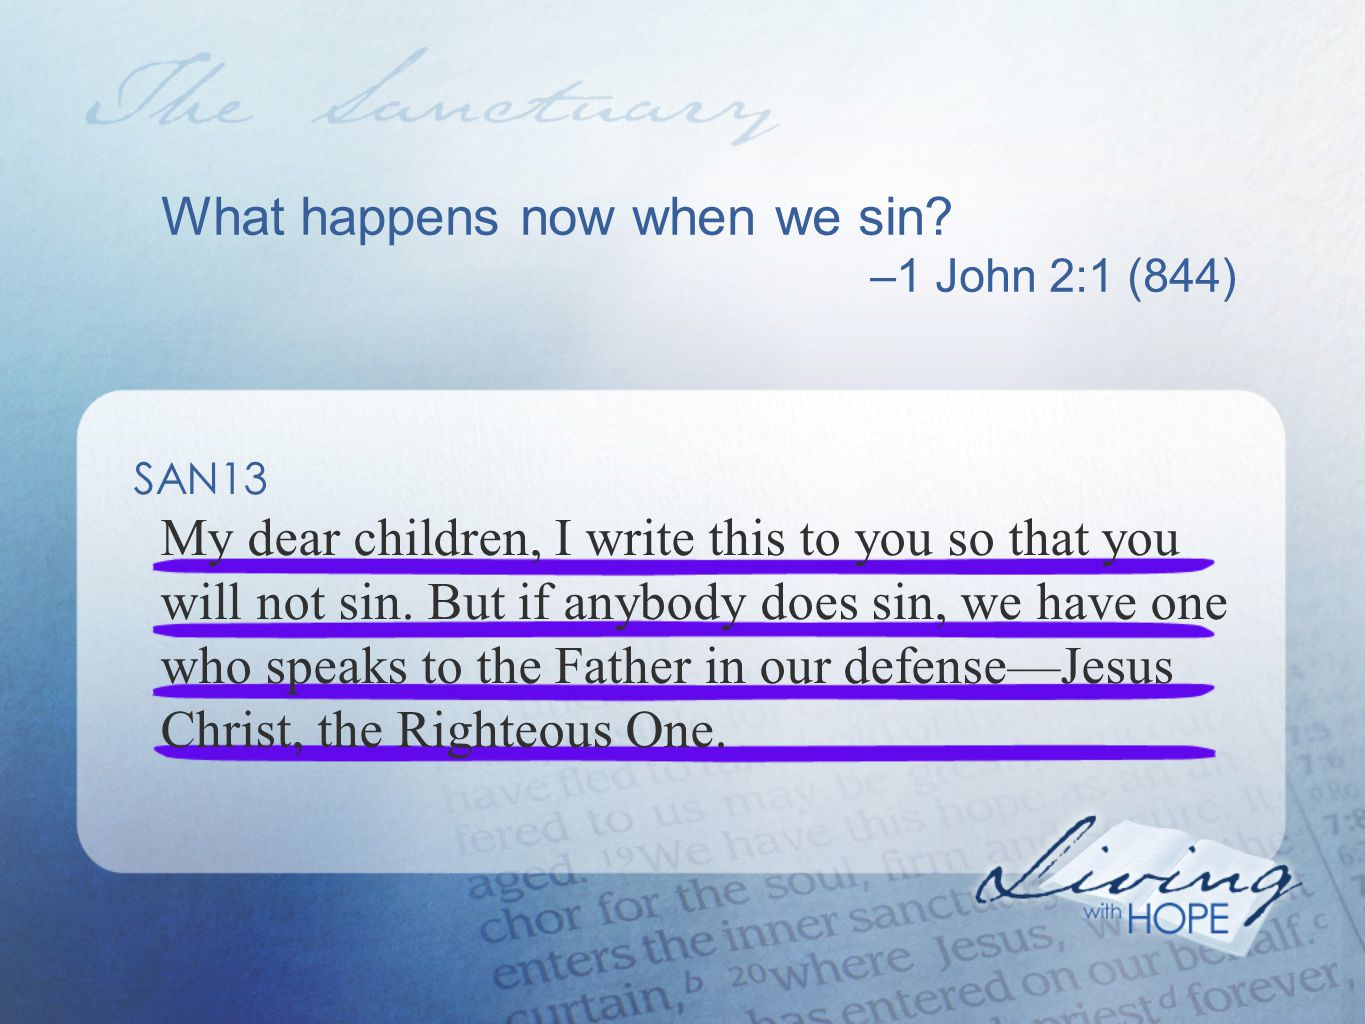 What happens now when we sin.